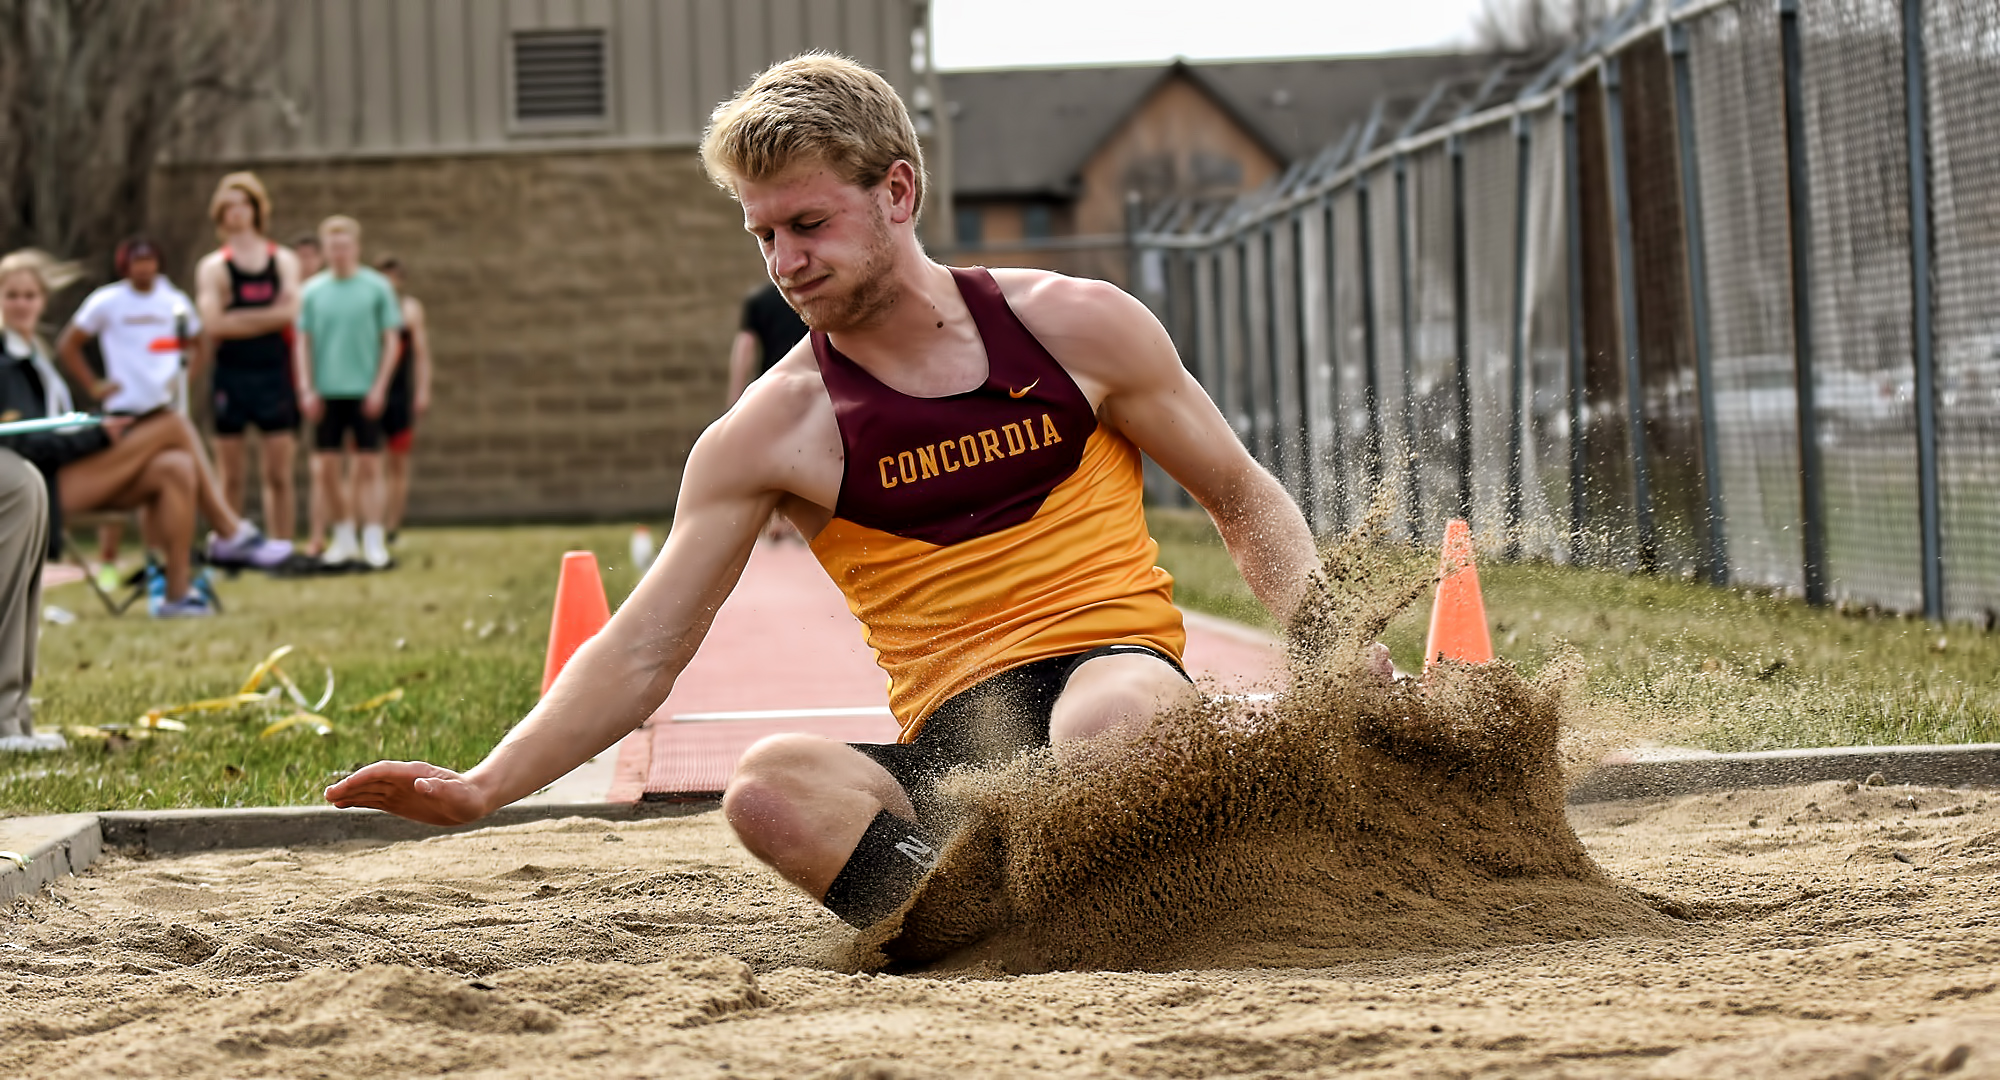 Matt Bye became the seventh Cobber athlete to win the MIAC decathlon with a personal best score of 6,586 points.